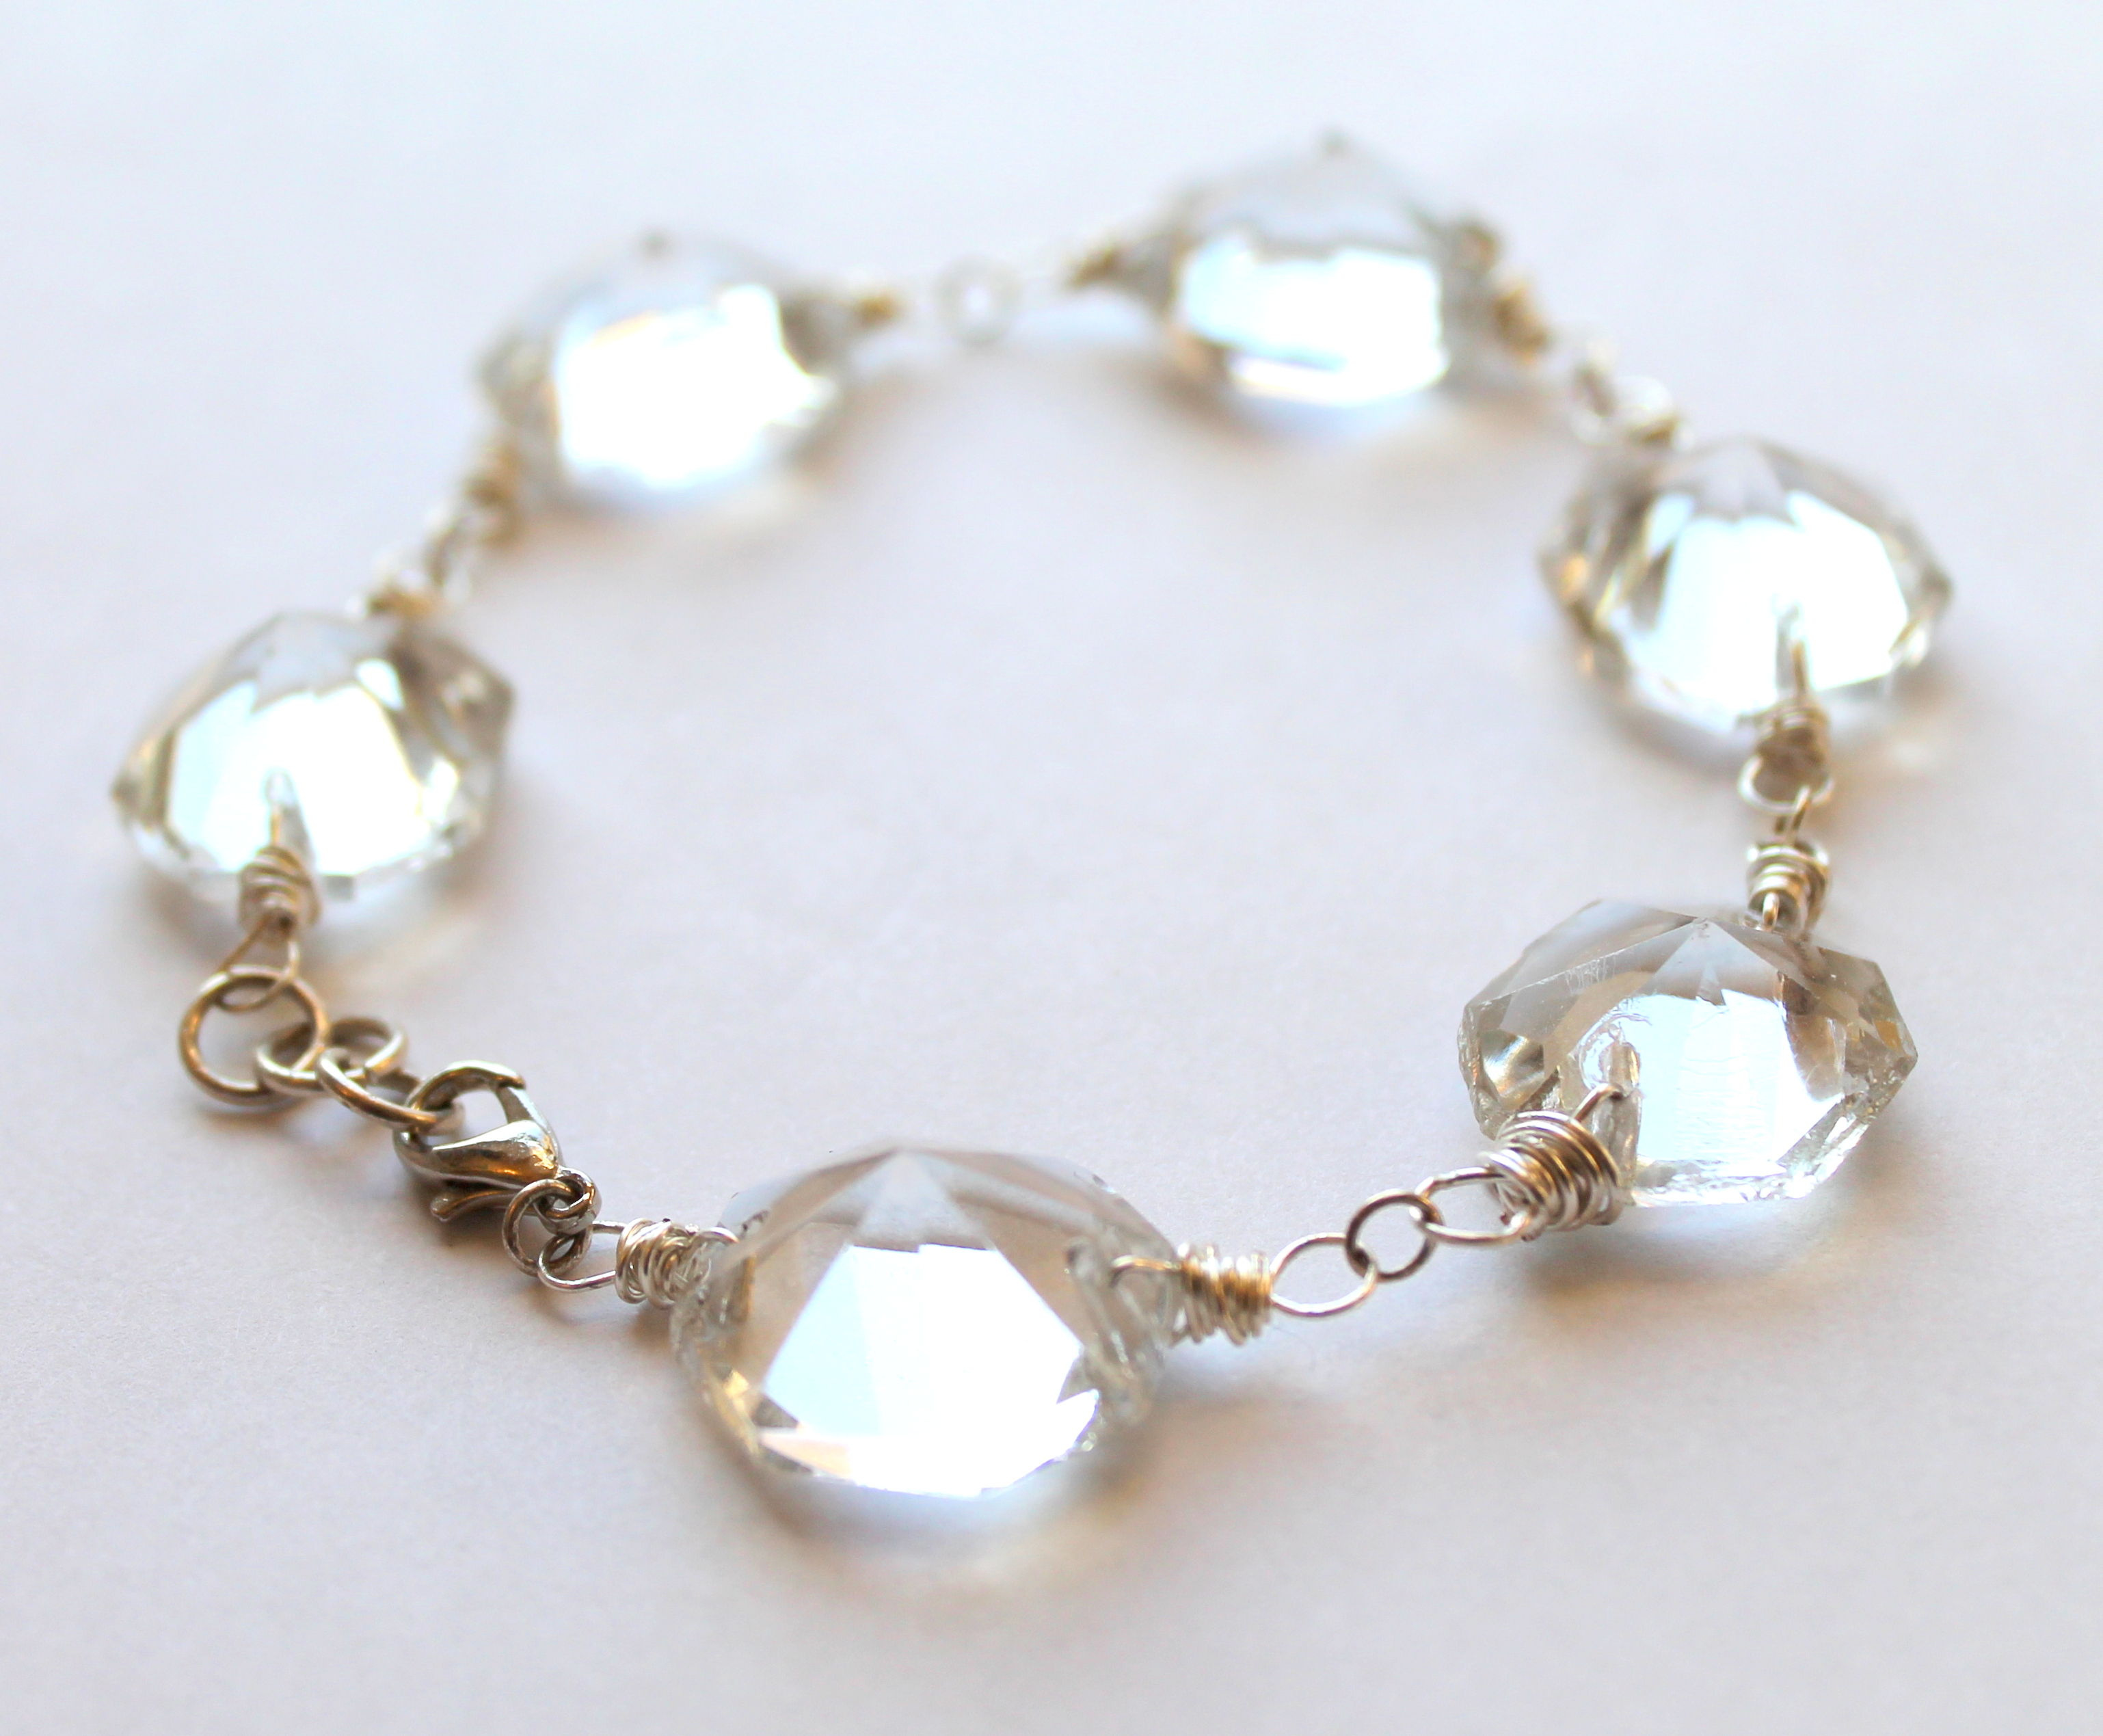 Upcycled crystal chandelier bracelet | Emerging Creatively Jewelry ...